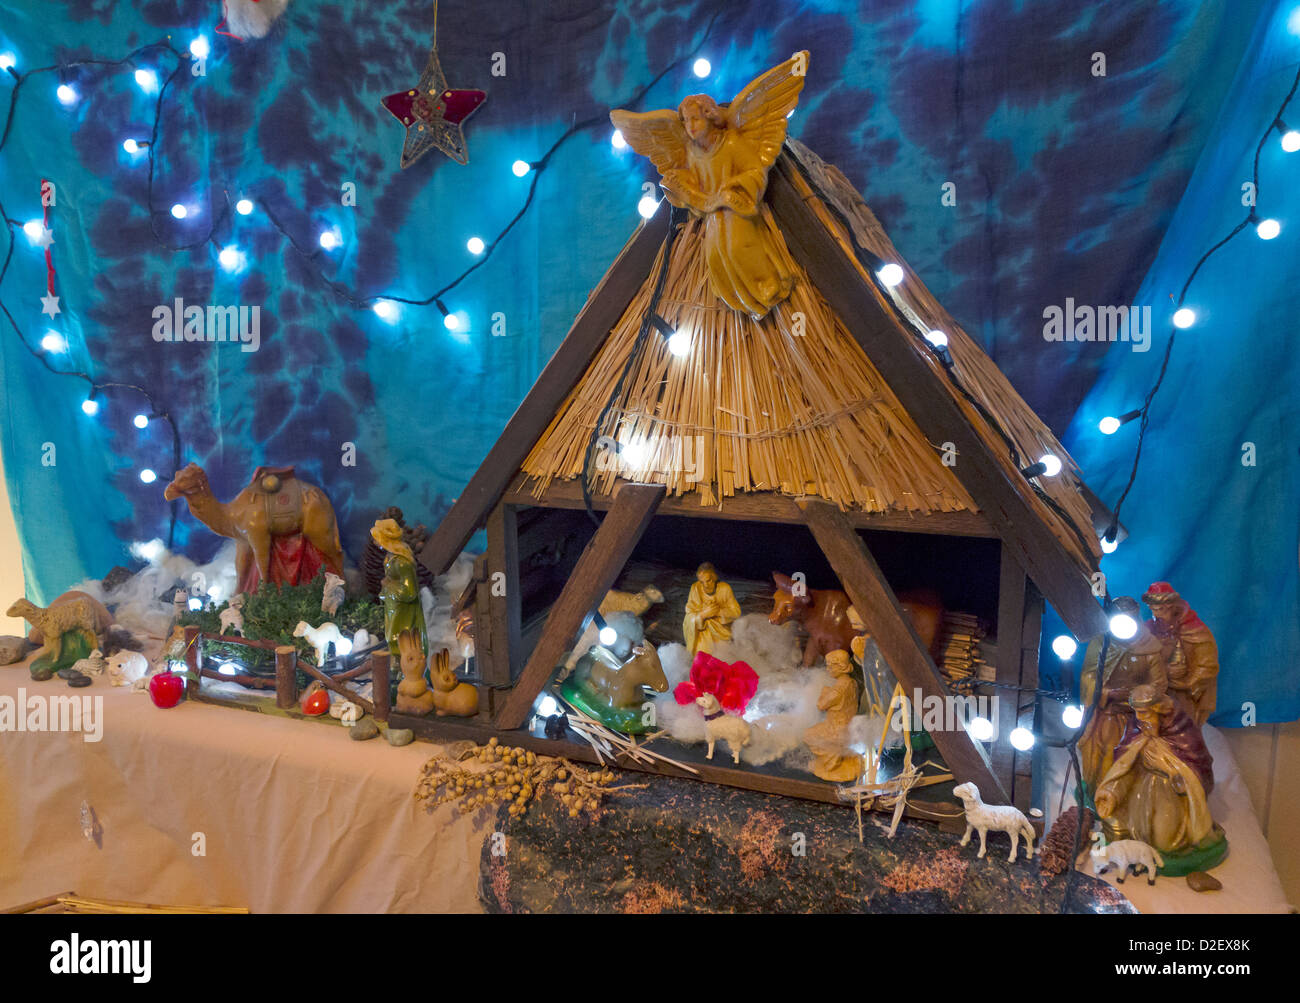 Christmas Crib Images Hd.Christmas Crib Stock Photos Christmas Crib Stock Images